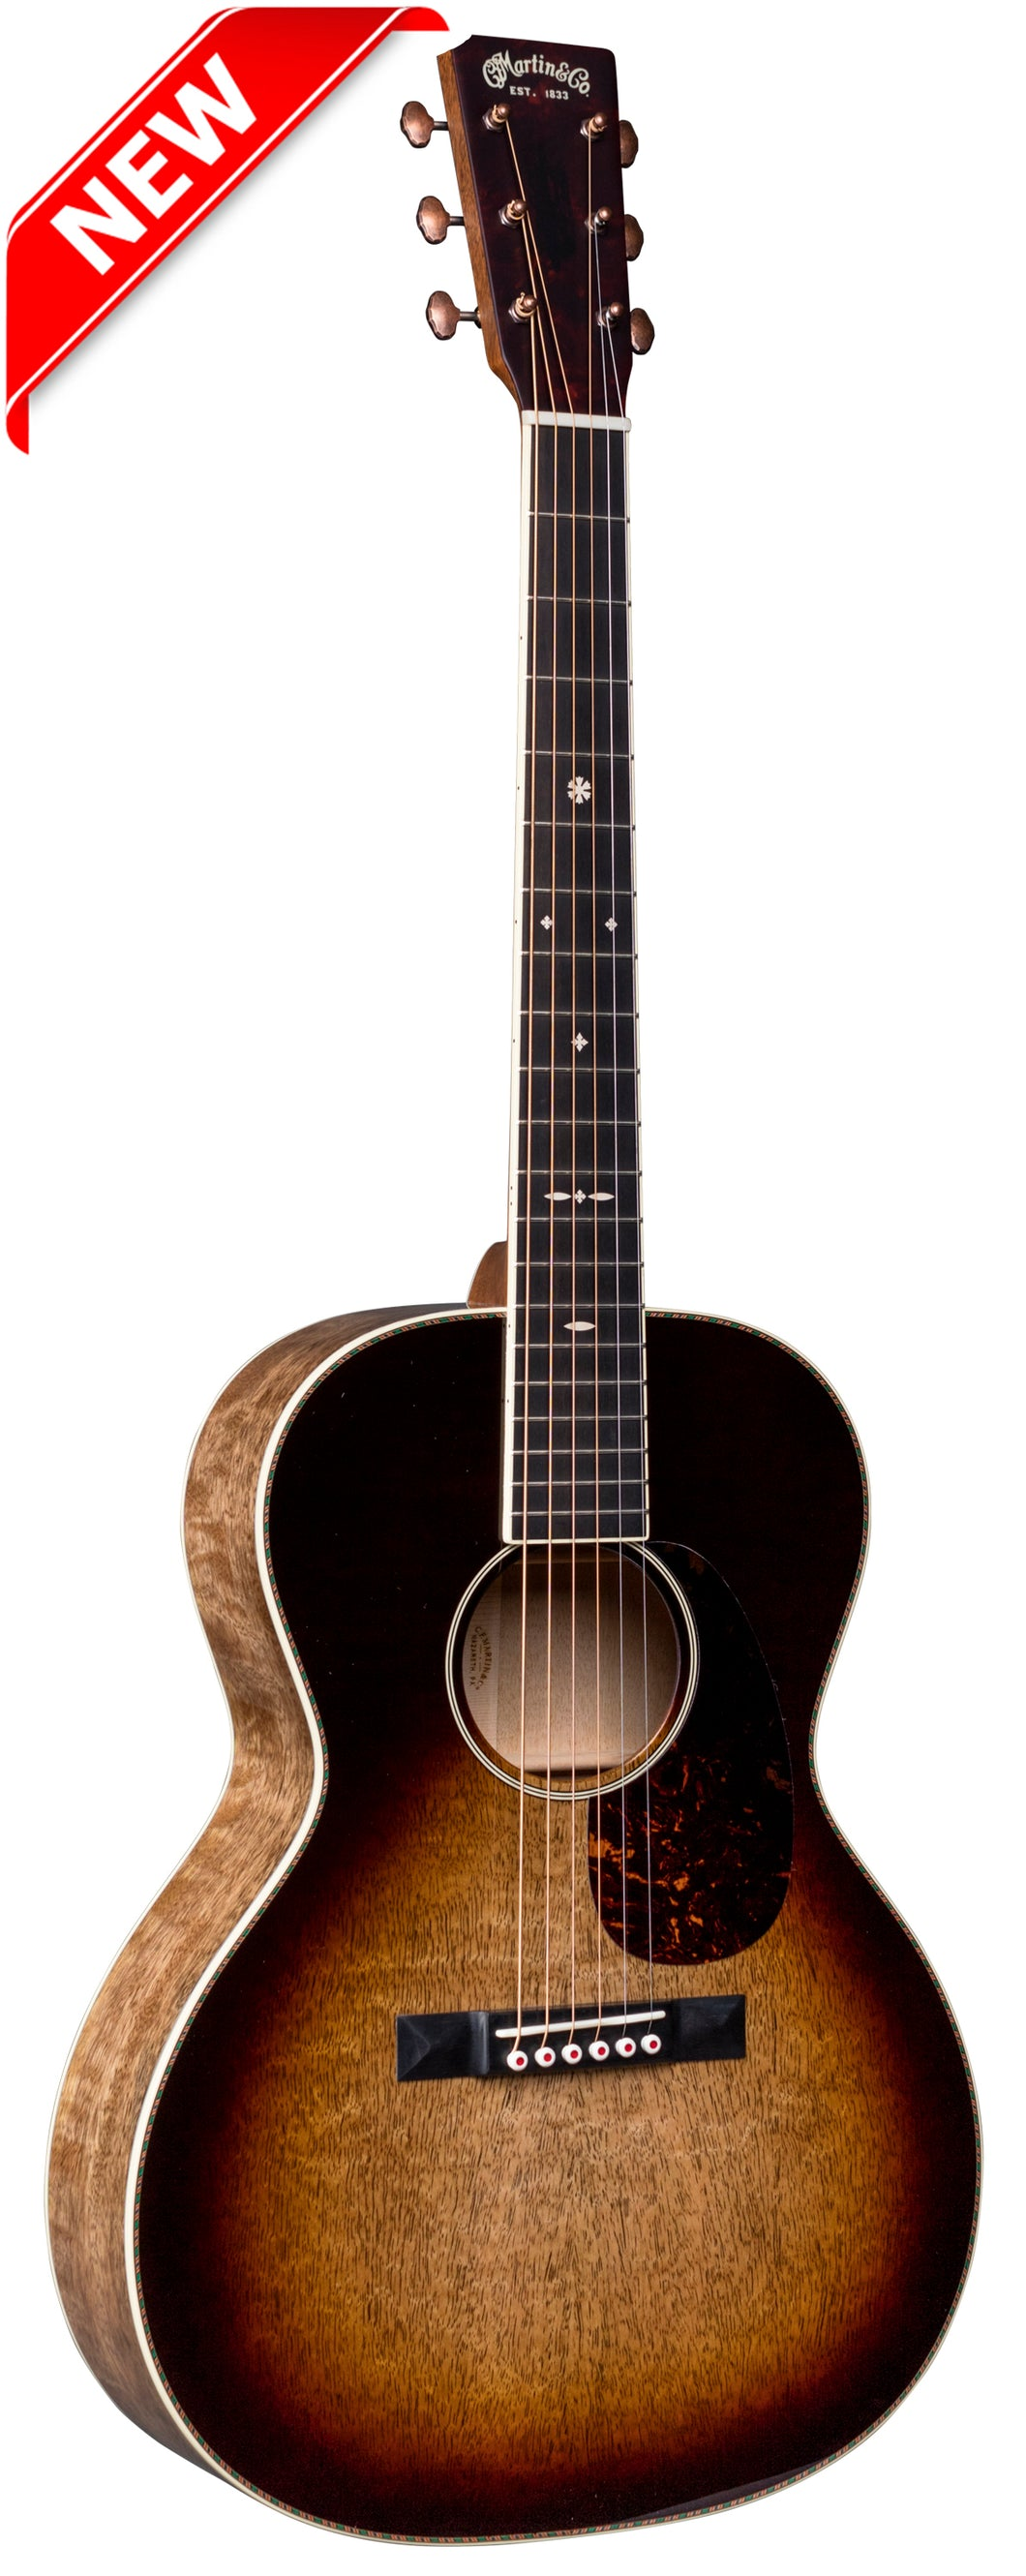 Martin CEO-9  Acoustic Guitar with Hard Case